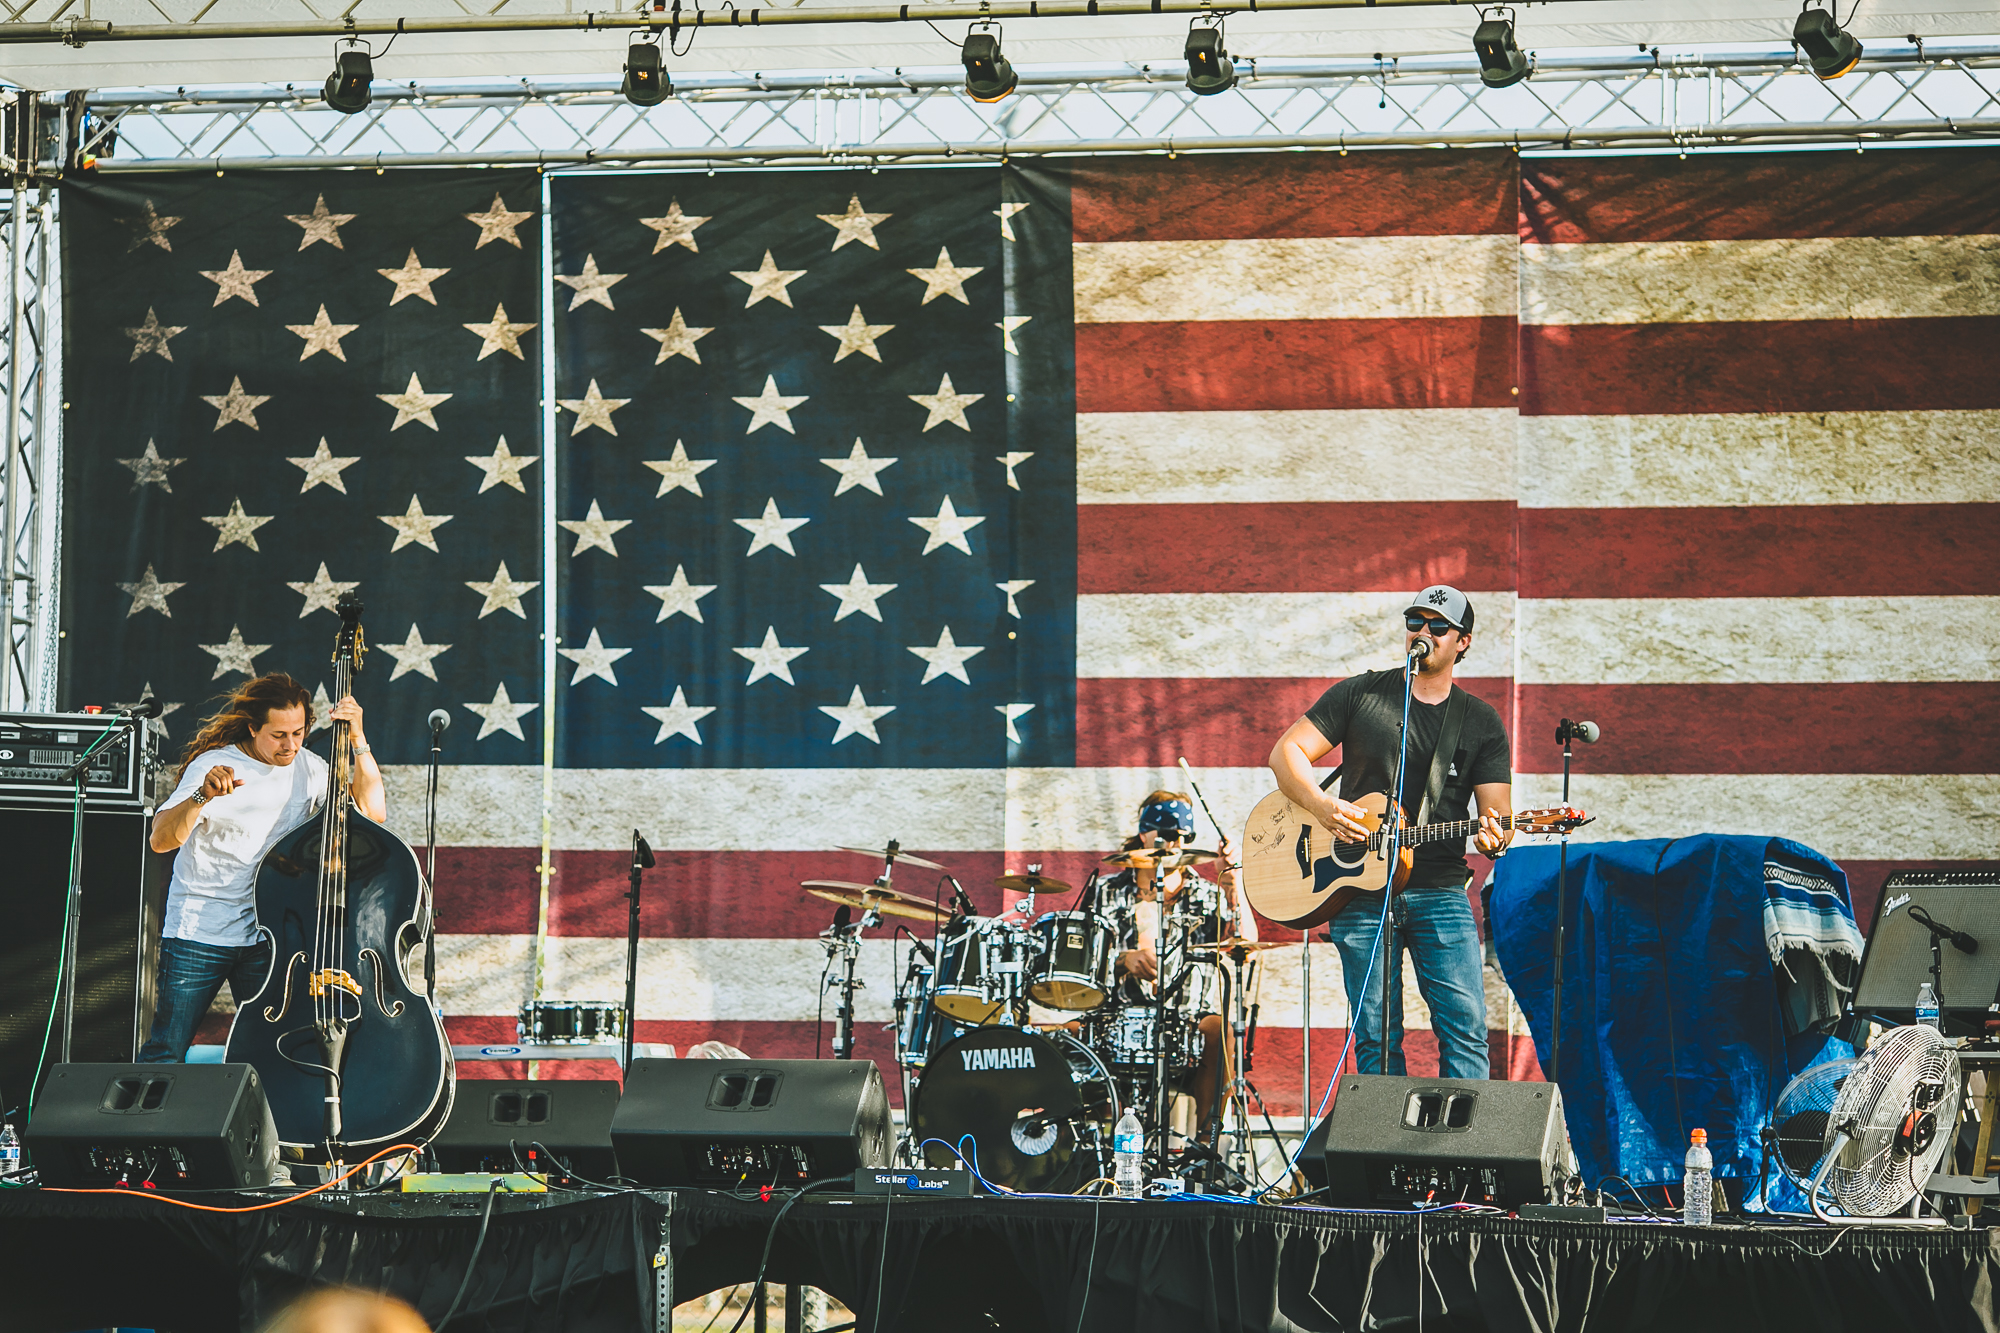 Free music is a feature of the Star Spangled Spectacular.